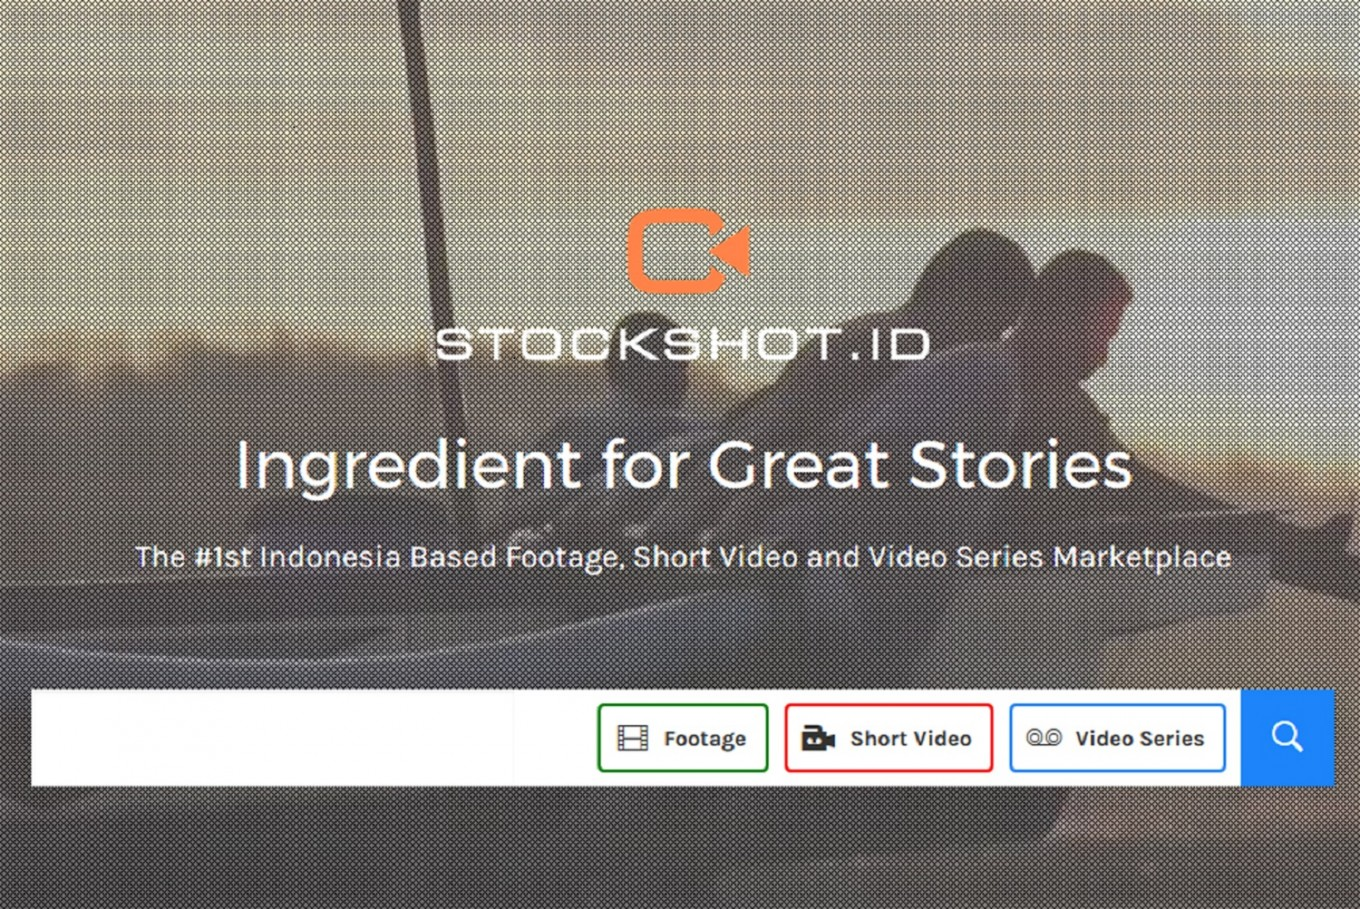 Newly-launched Stockshot.ID offers videos, footages about Indonesia